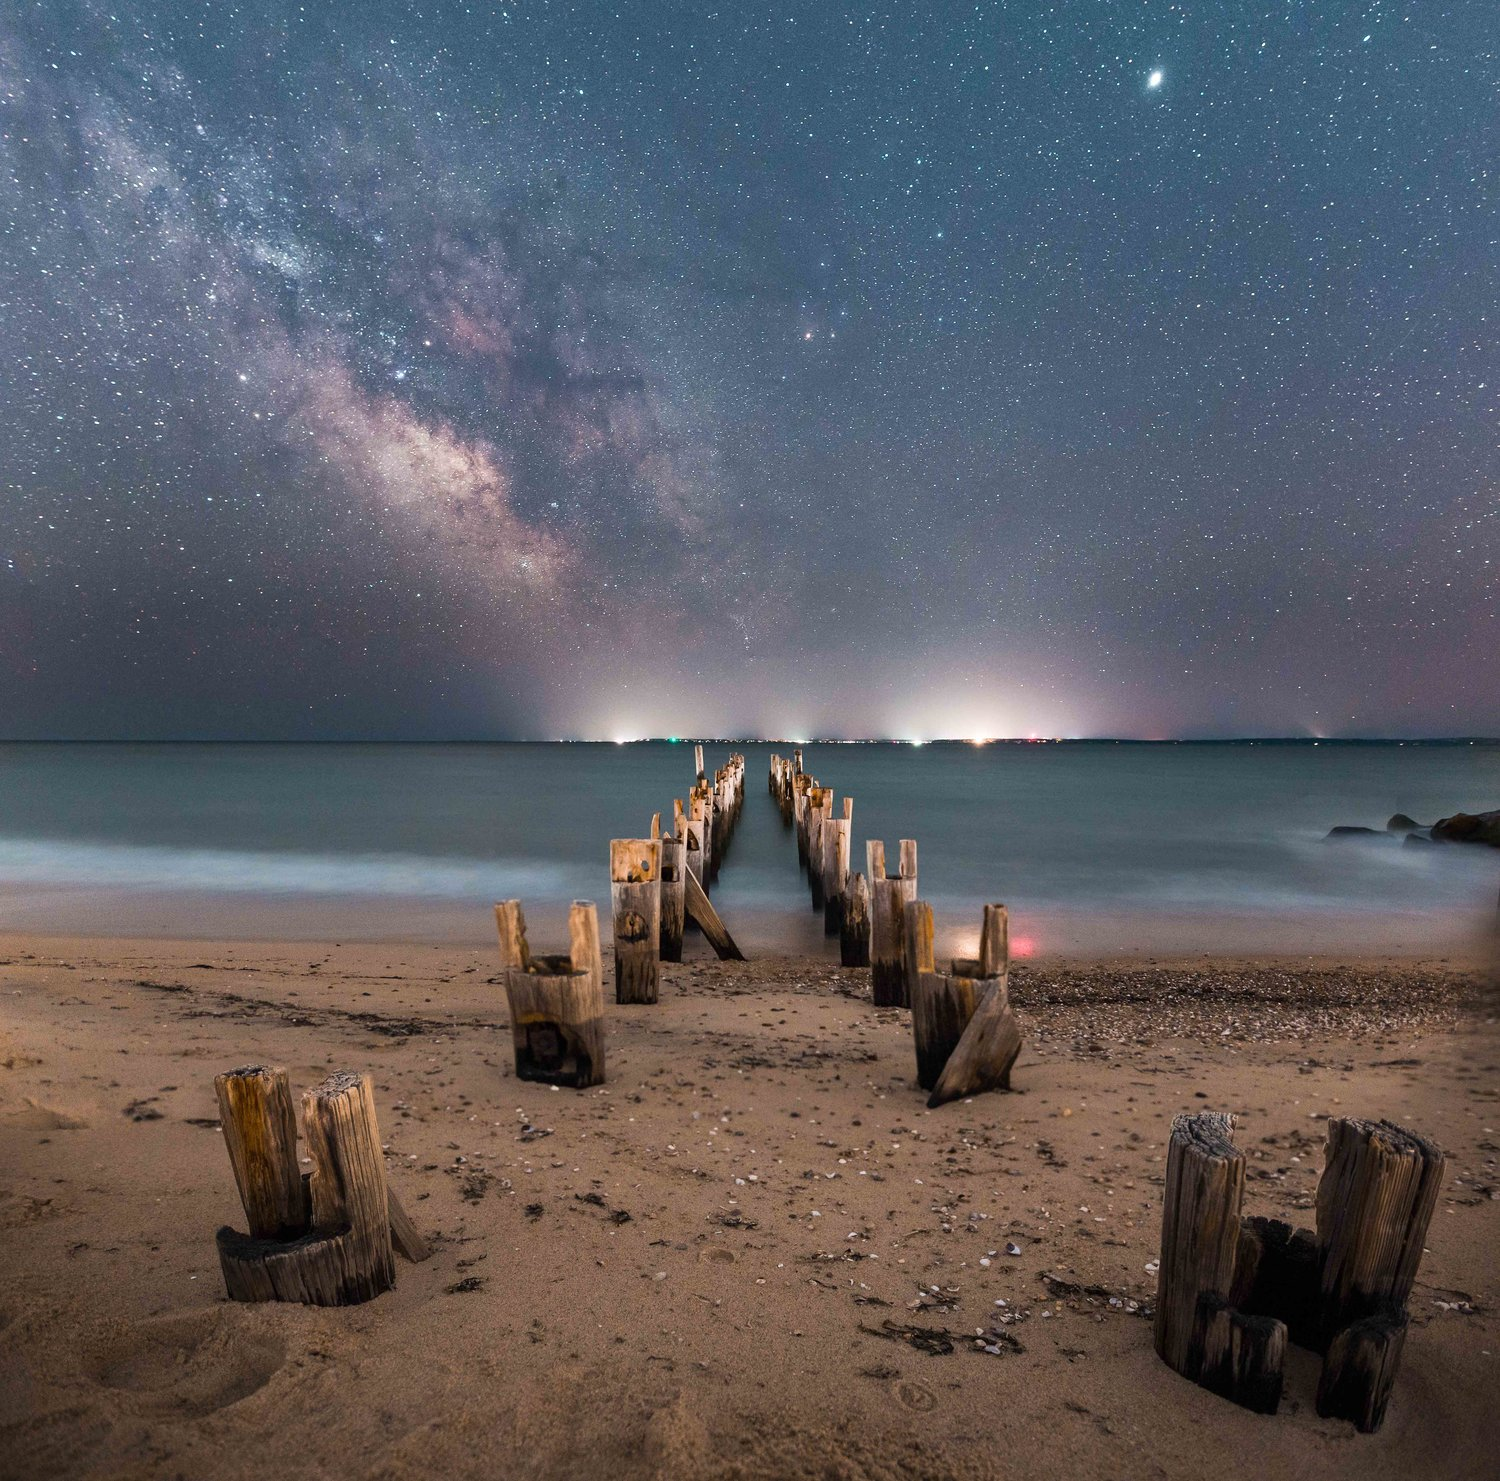 Last year's Grand Prize winning photo, pier pilings in Falmouth  illuminated by the Milky Way